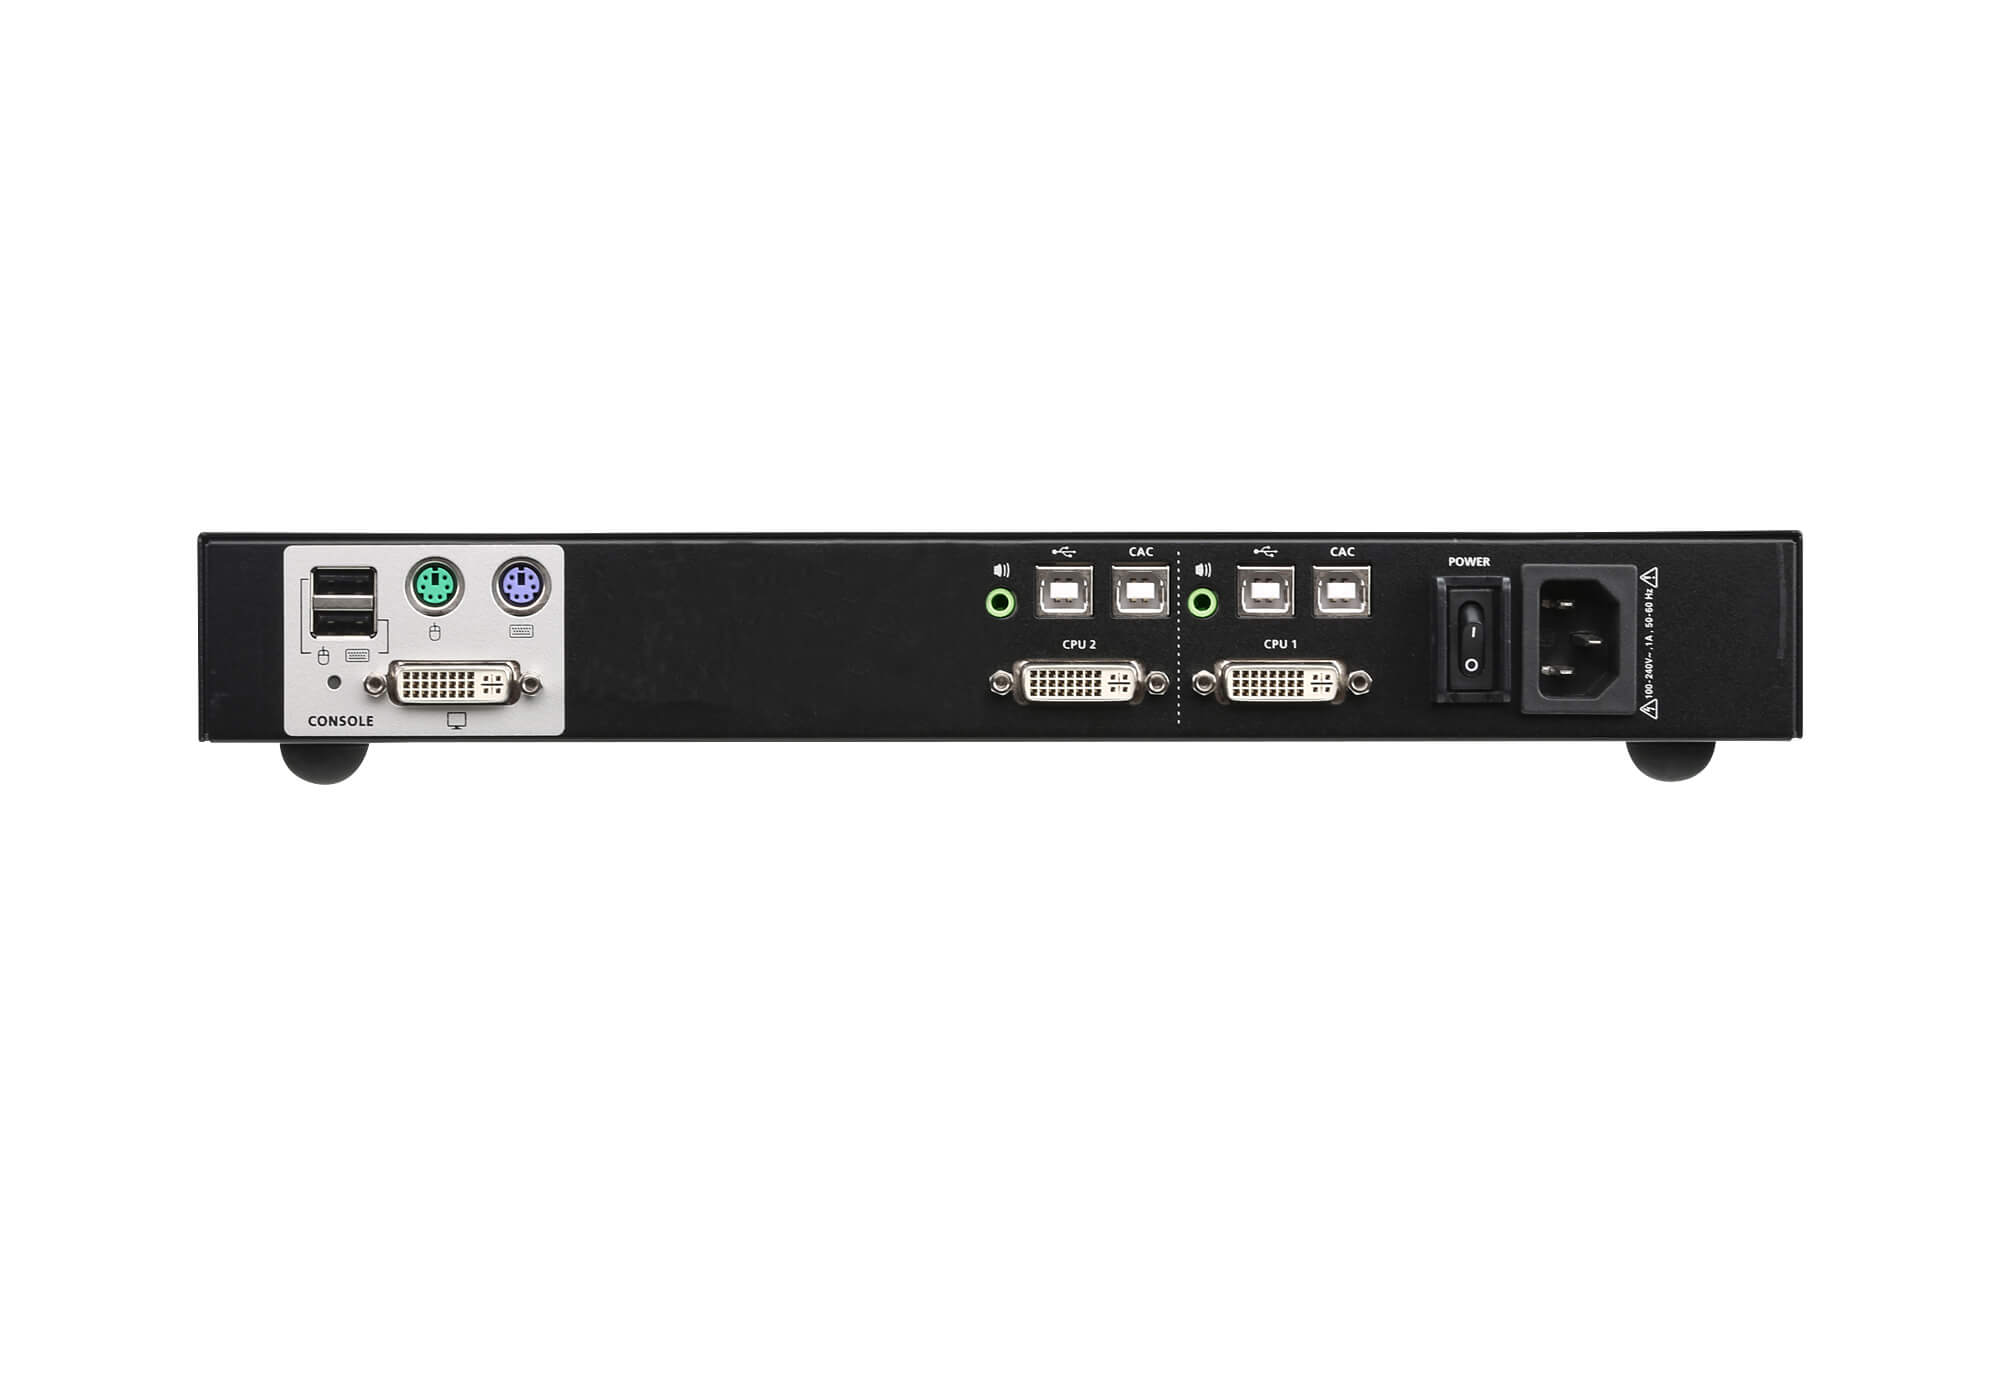 2-Port USB DVI Secure KVM Switch (PSS PP v3.0 Compliant)-2